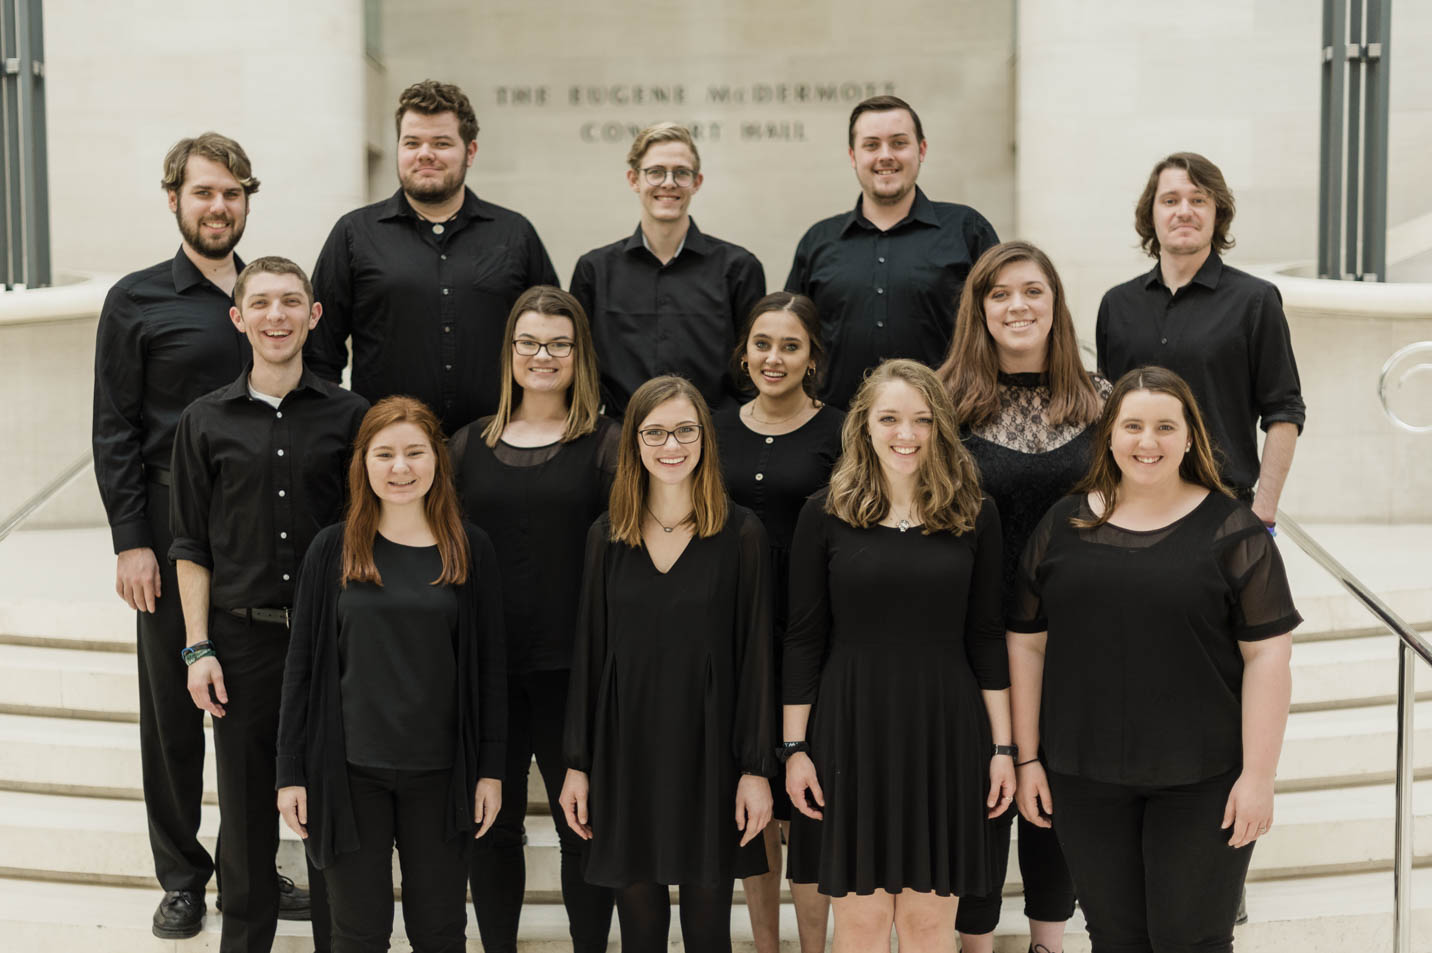 This is a photo of the Harding University Chamber Singers.